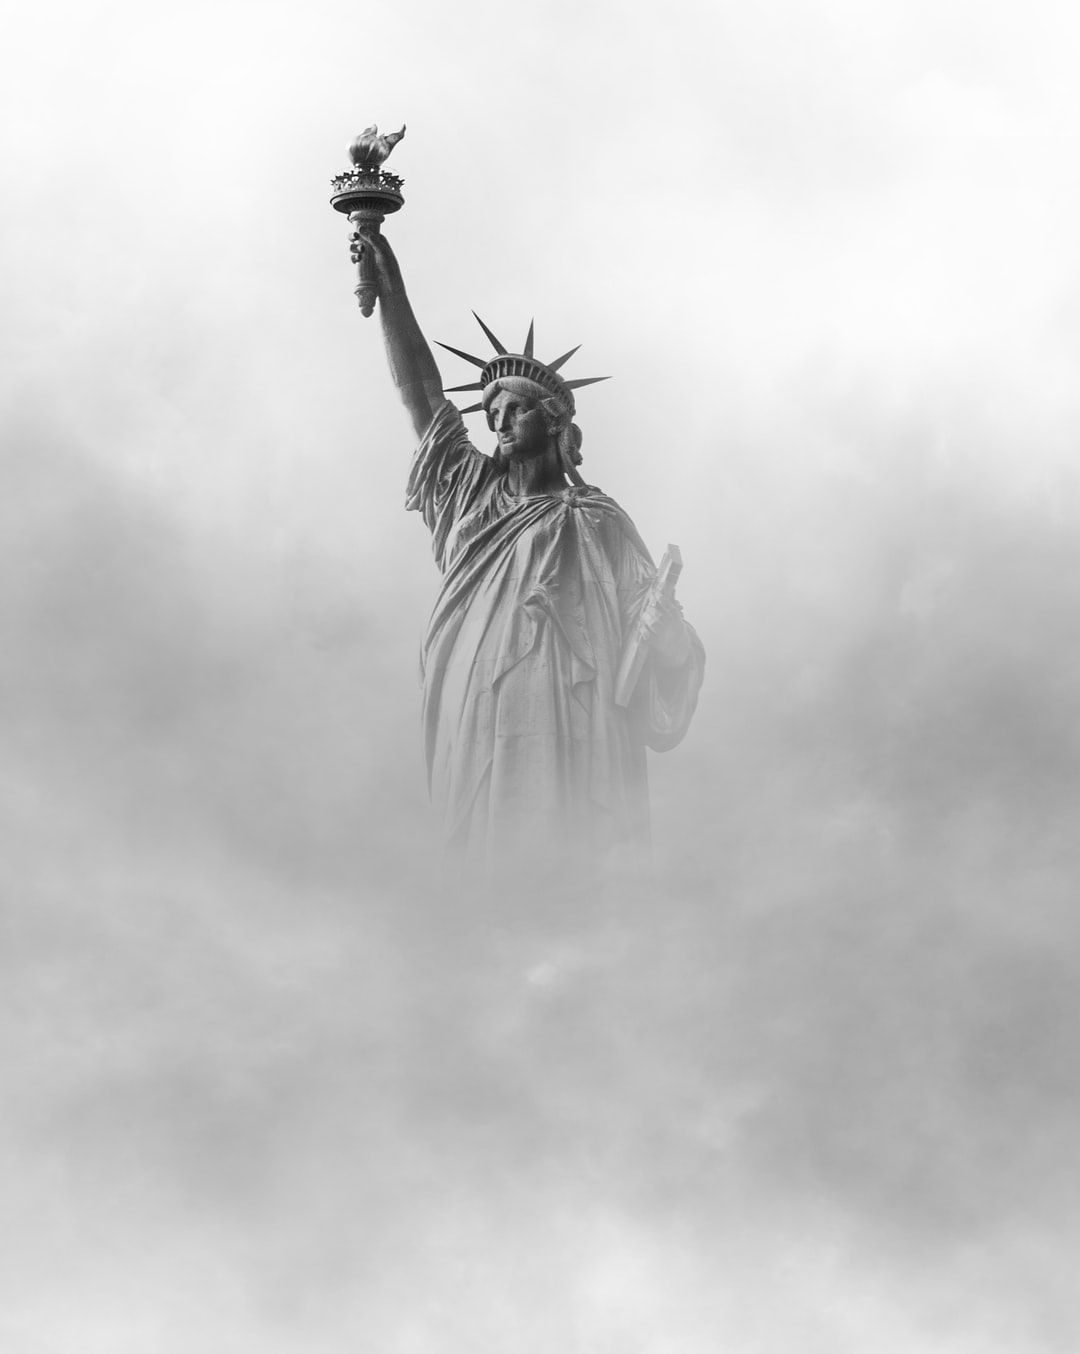 Statue Of Liberty Images Free Download